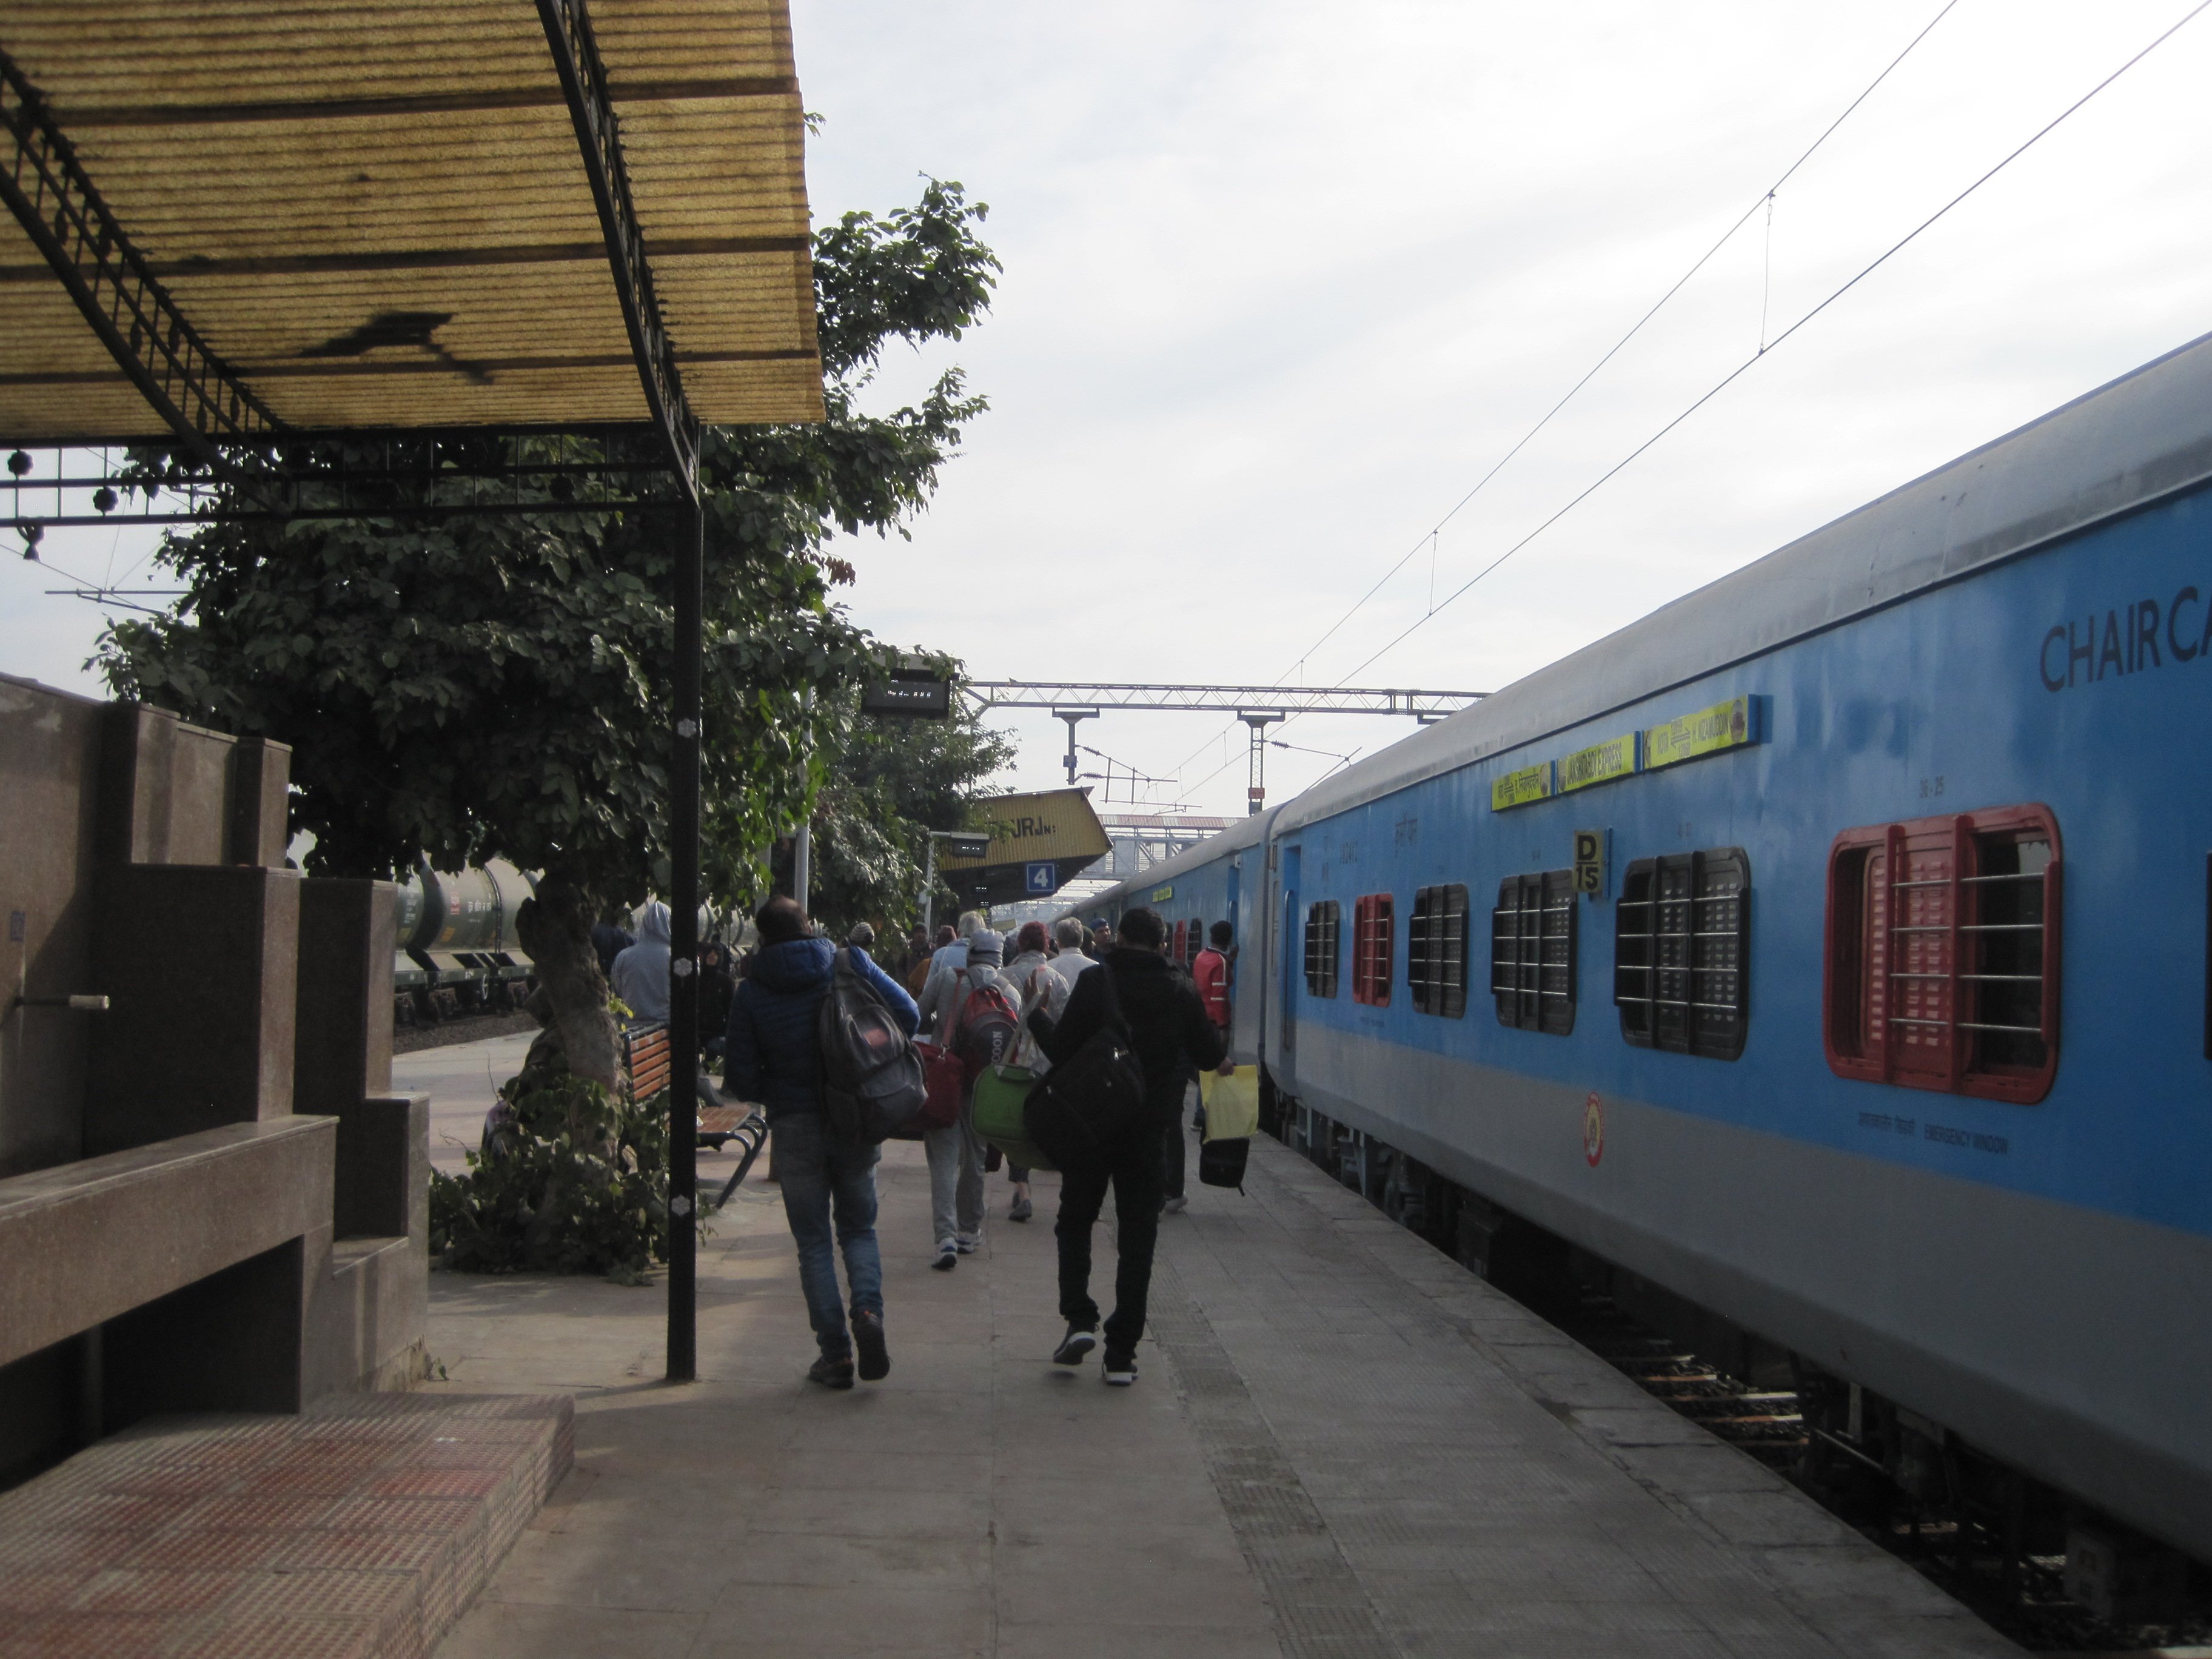 Arrival at Bharatpur - photo by Juliamaud